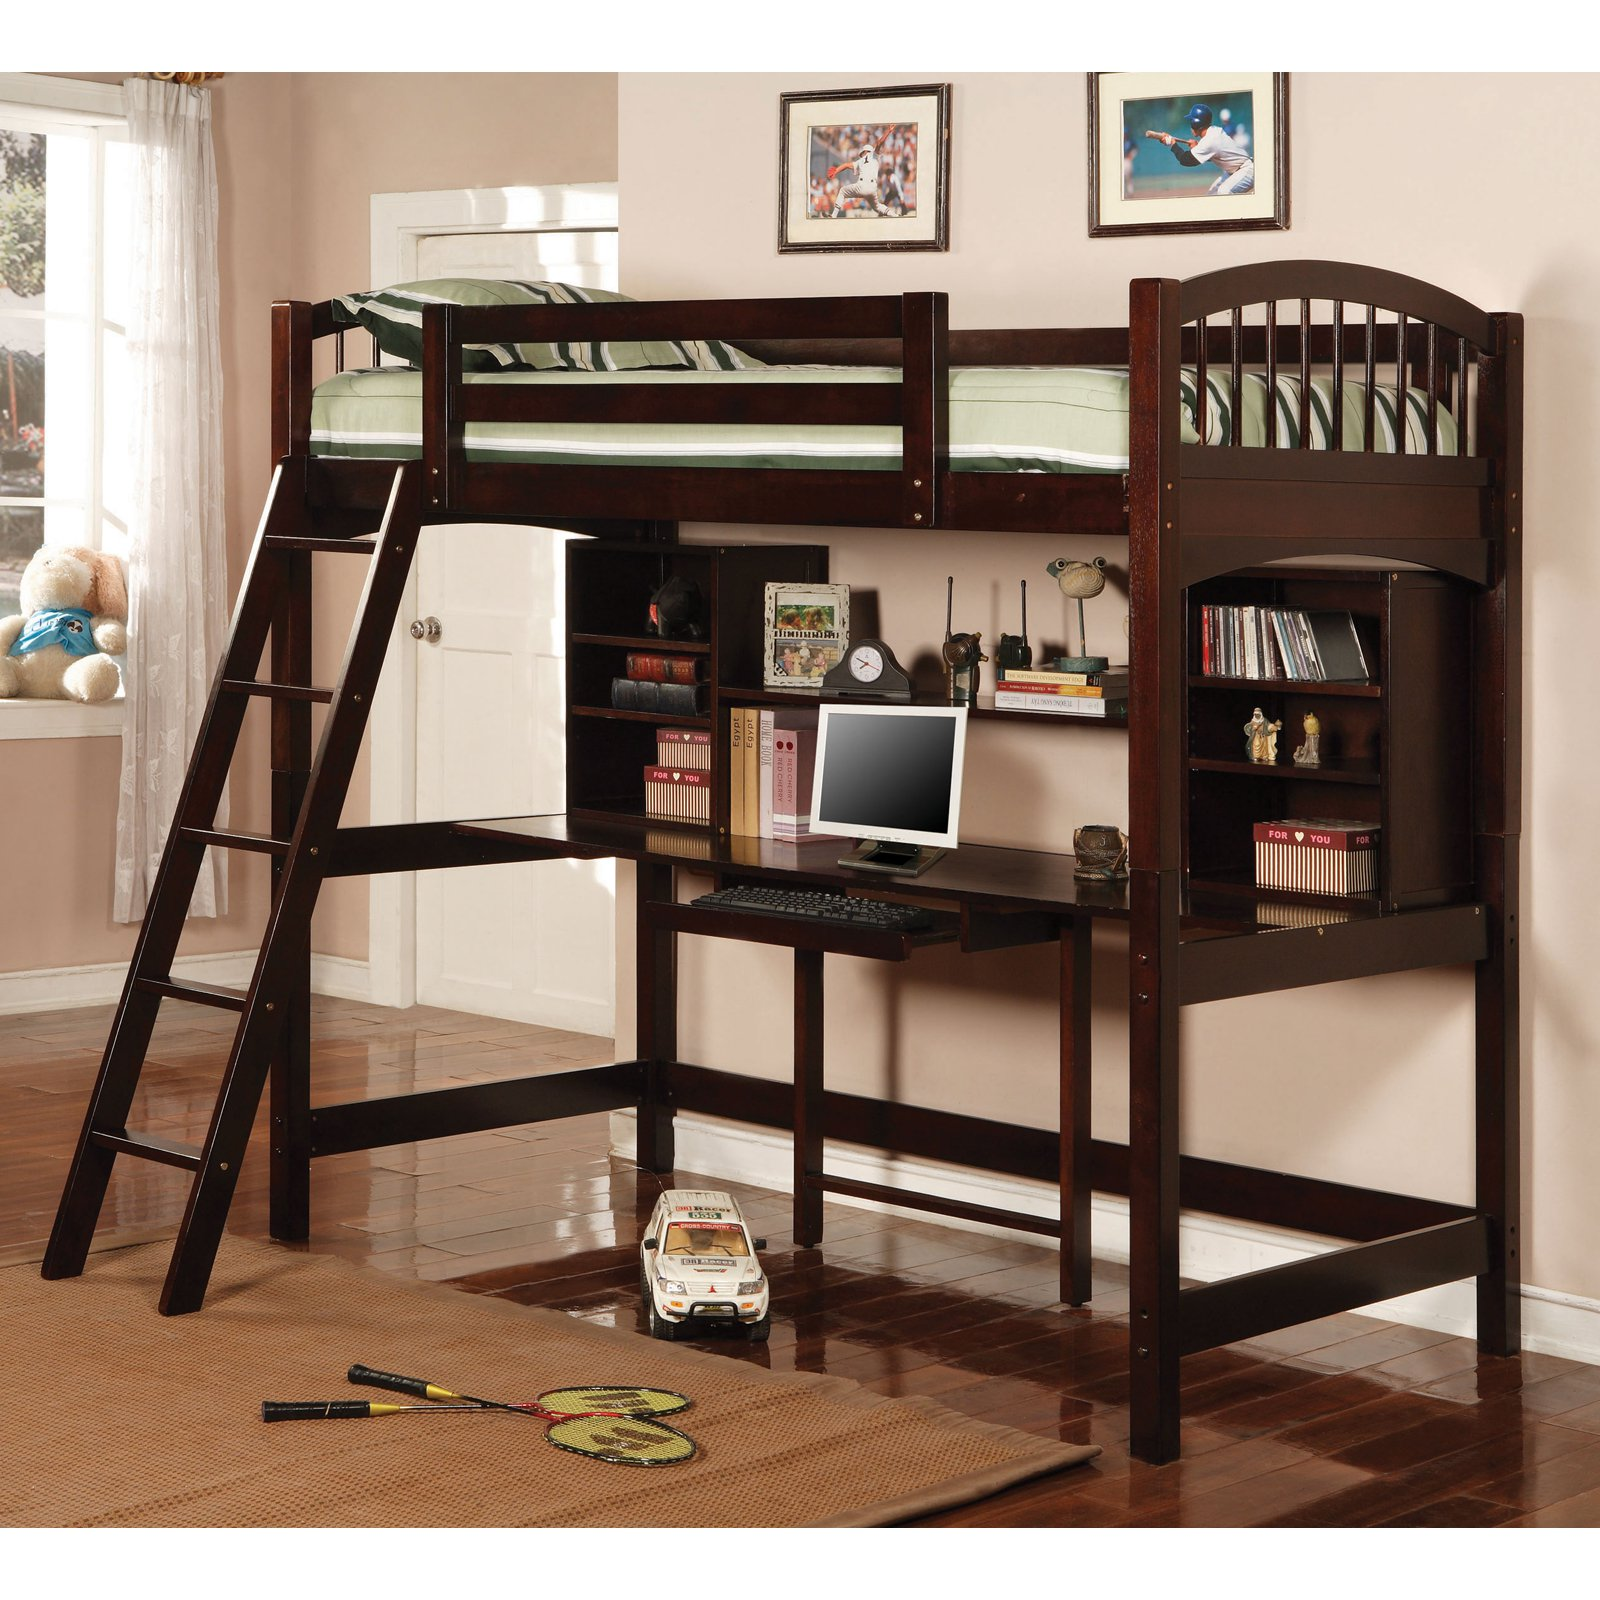 Coaster Furniture Bunks Casual Twin Workstation Loft Bunk - Cappuccino